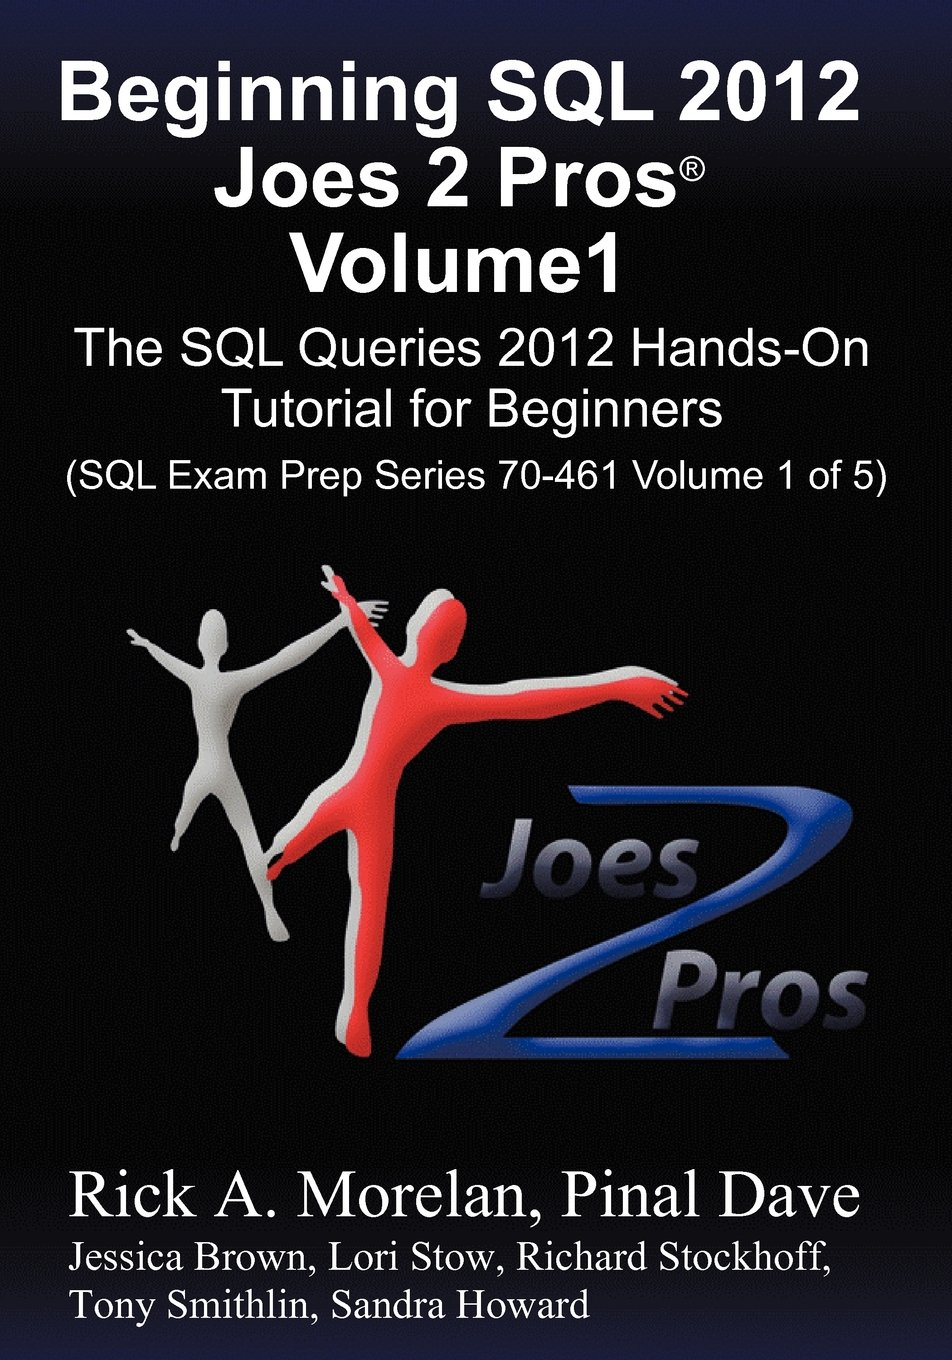 Beginning SQL 2012 Joes 2 Pros Volume 1: The SQL Queries 2012 Hands-On Tutorial for Beginners (SQL Exam Prep Series 70-461 Volume 1 Of 5) by Brand: Joes 2 Pros International LLC